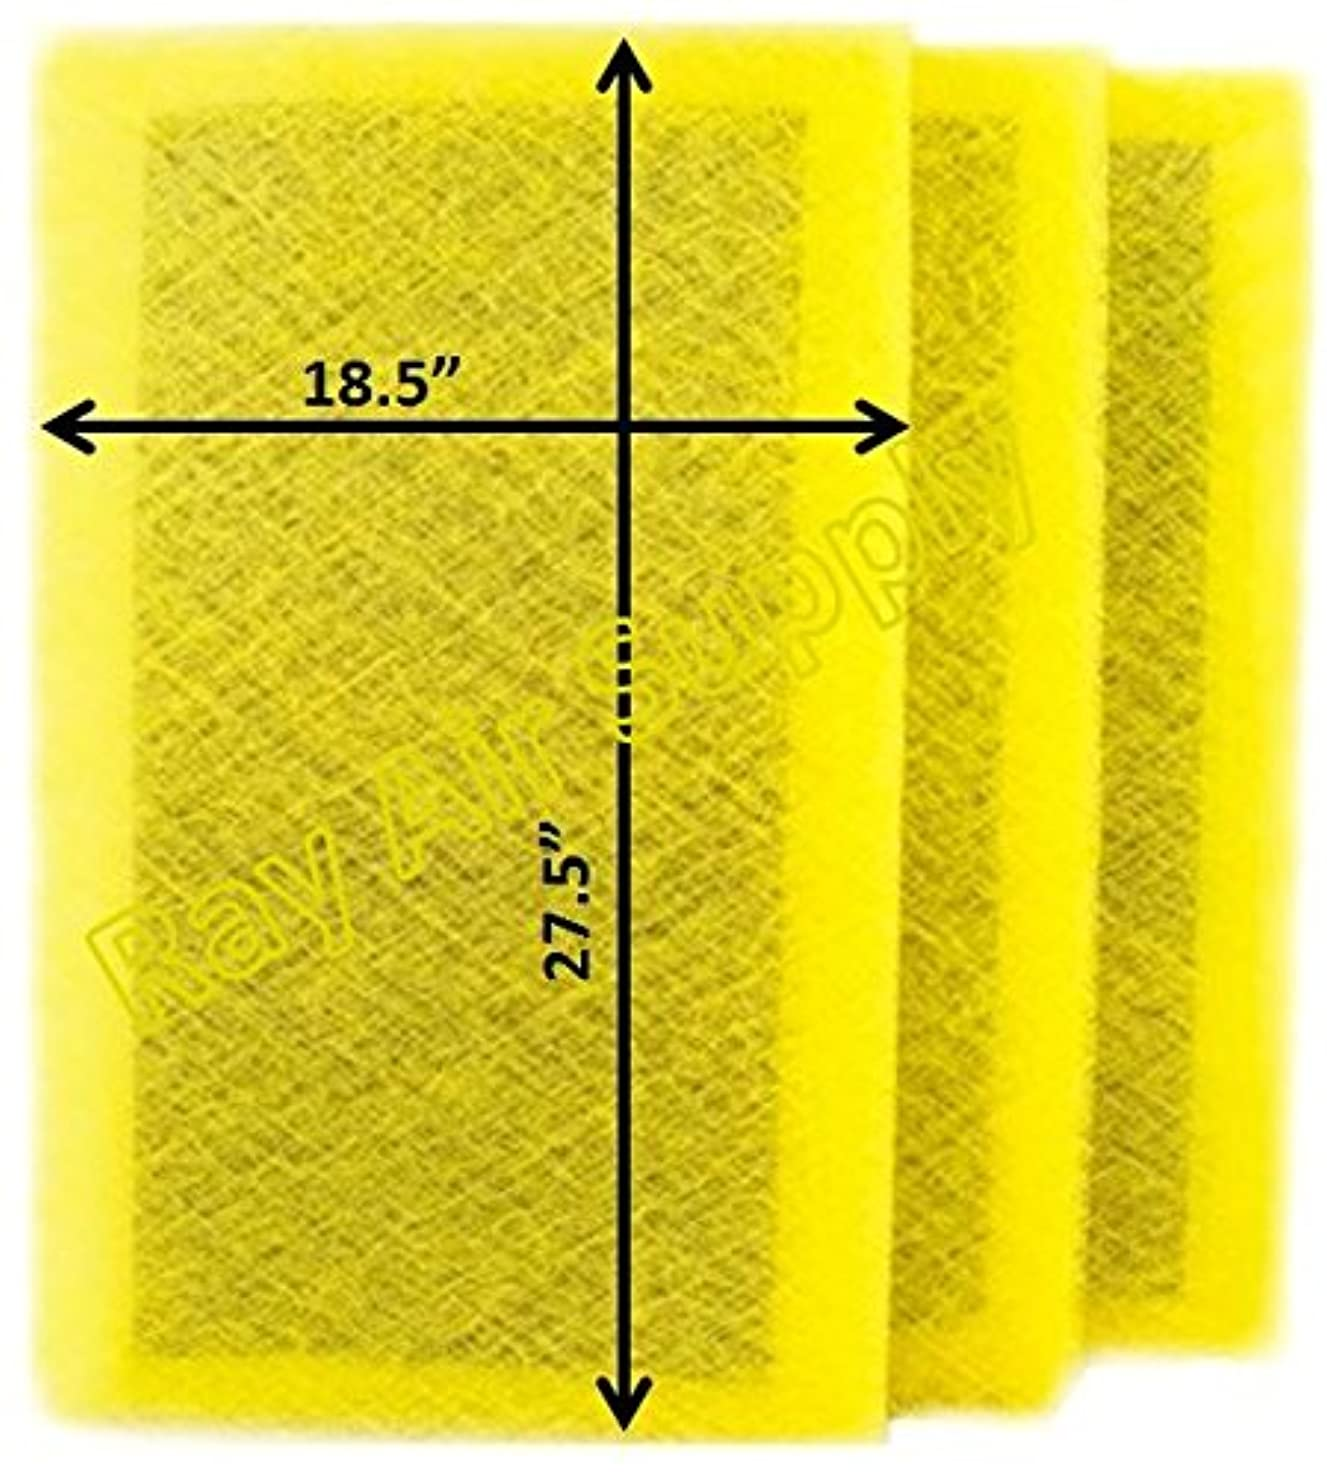 RAYAIR SUPPLY 20x30 MicroPower Guard Air Cleaner Replacement Filter Pads (3 Pack) Yellow